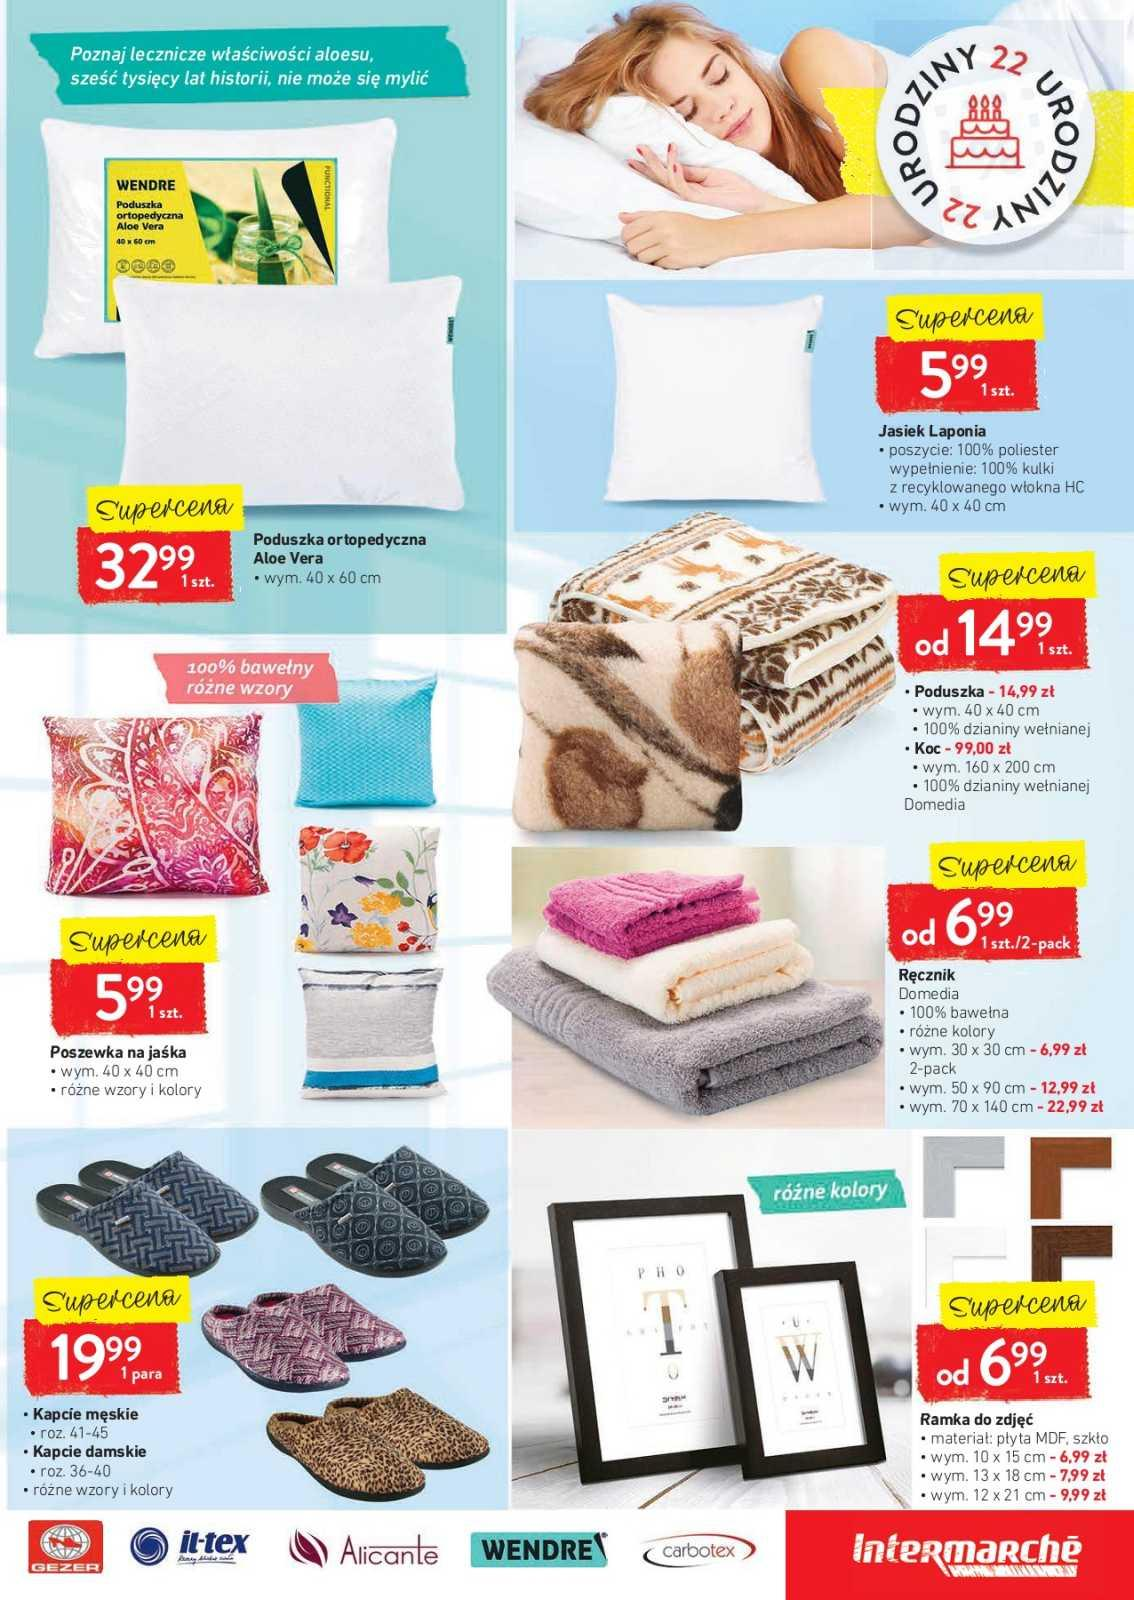 Gazetka promocyjna Intermarche do 07/10/2019 str.26